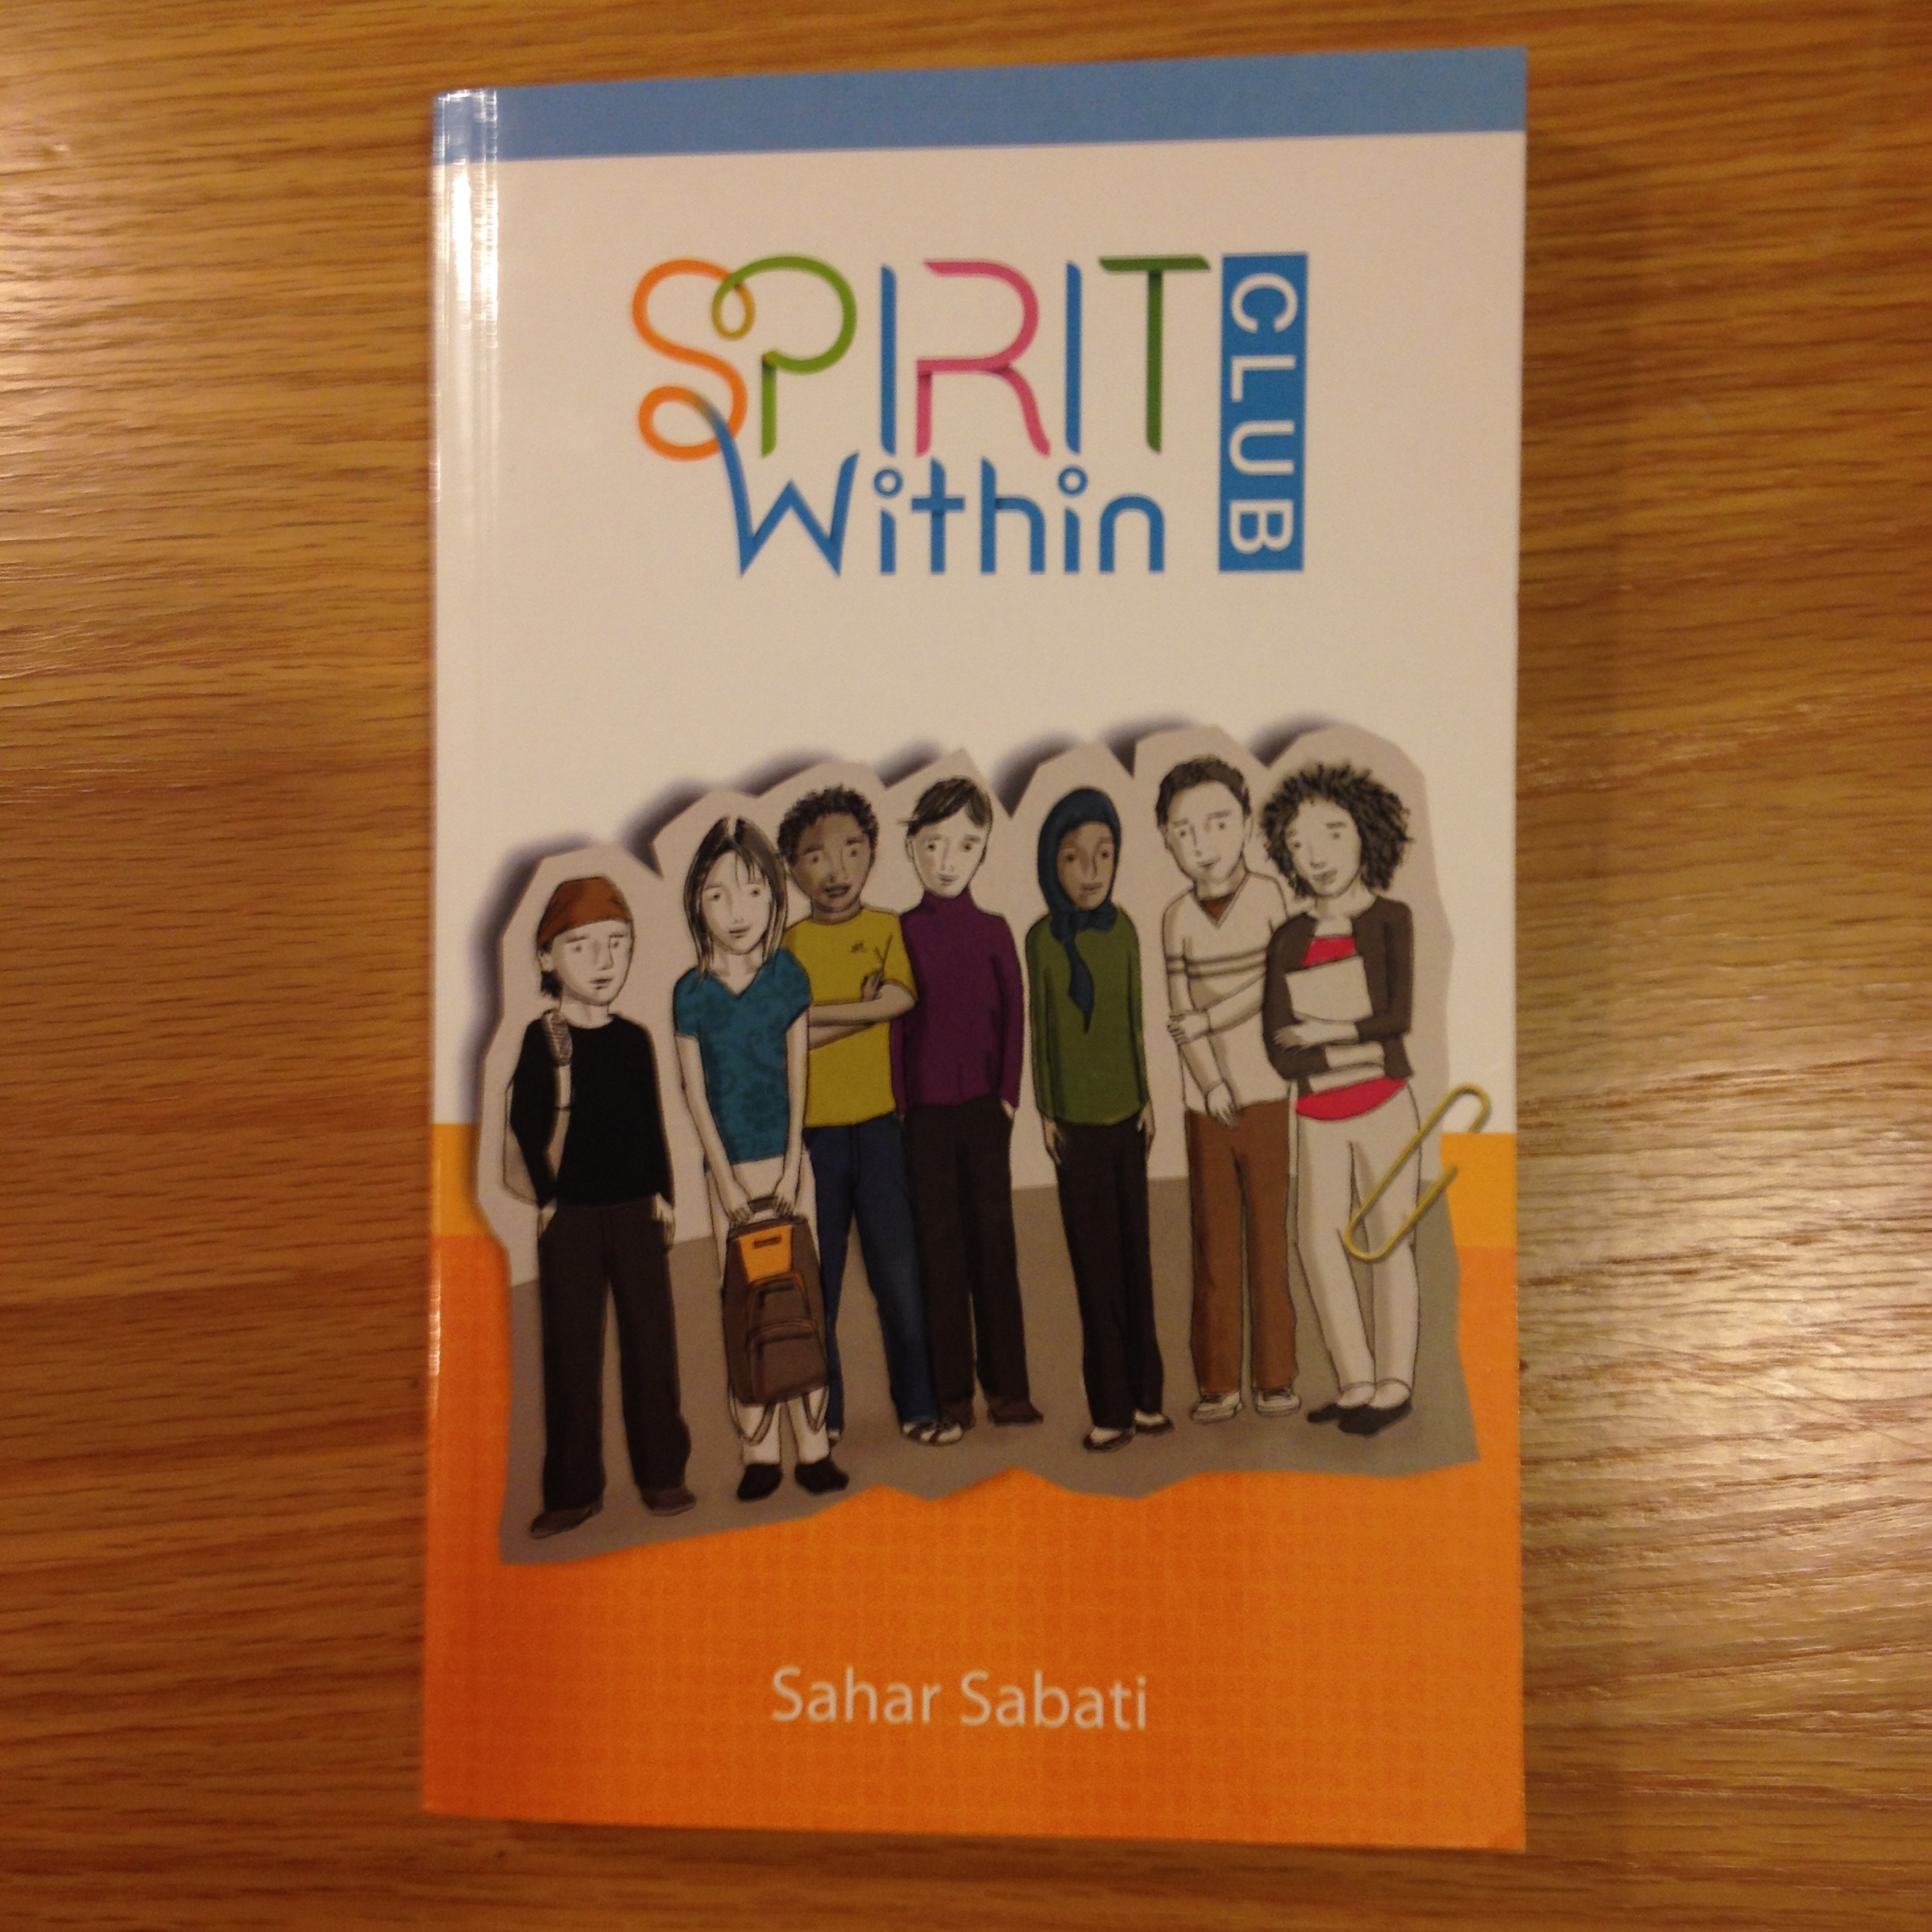 The Spirit Within Club